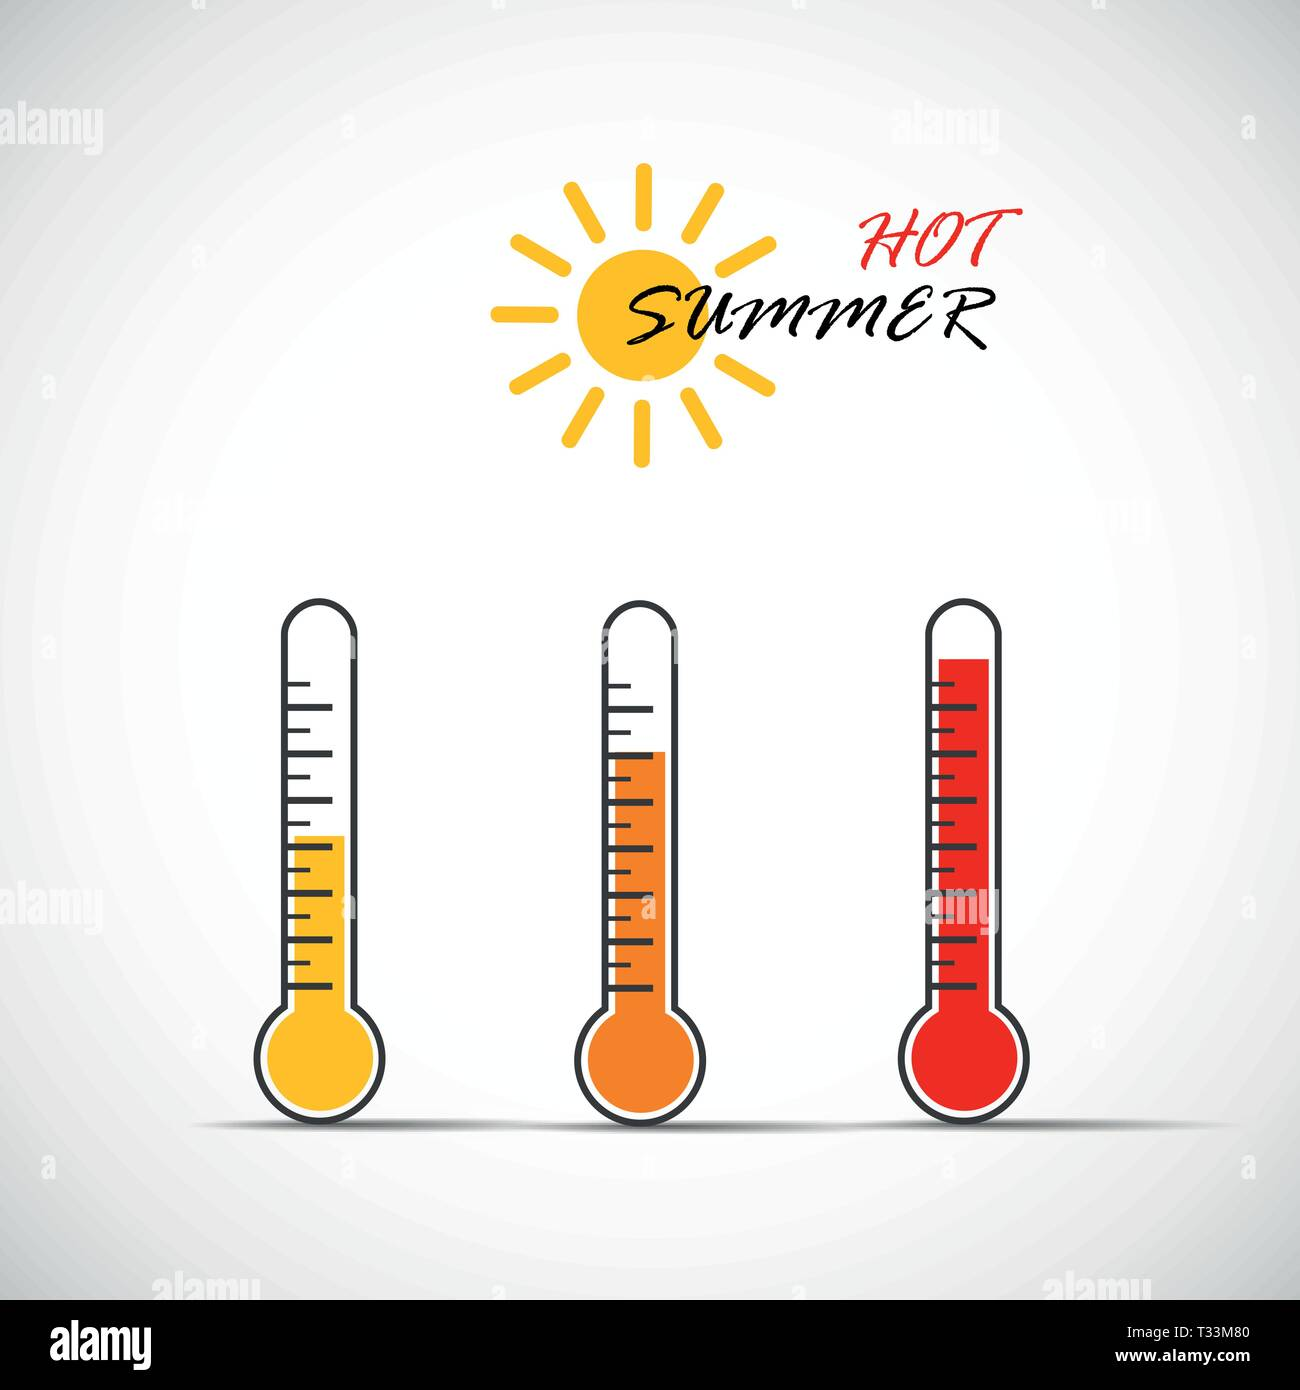 heat thermometer icon hot summer symbol vector illustration EPS10 - Stock Vector